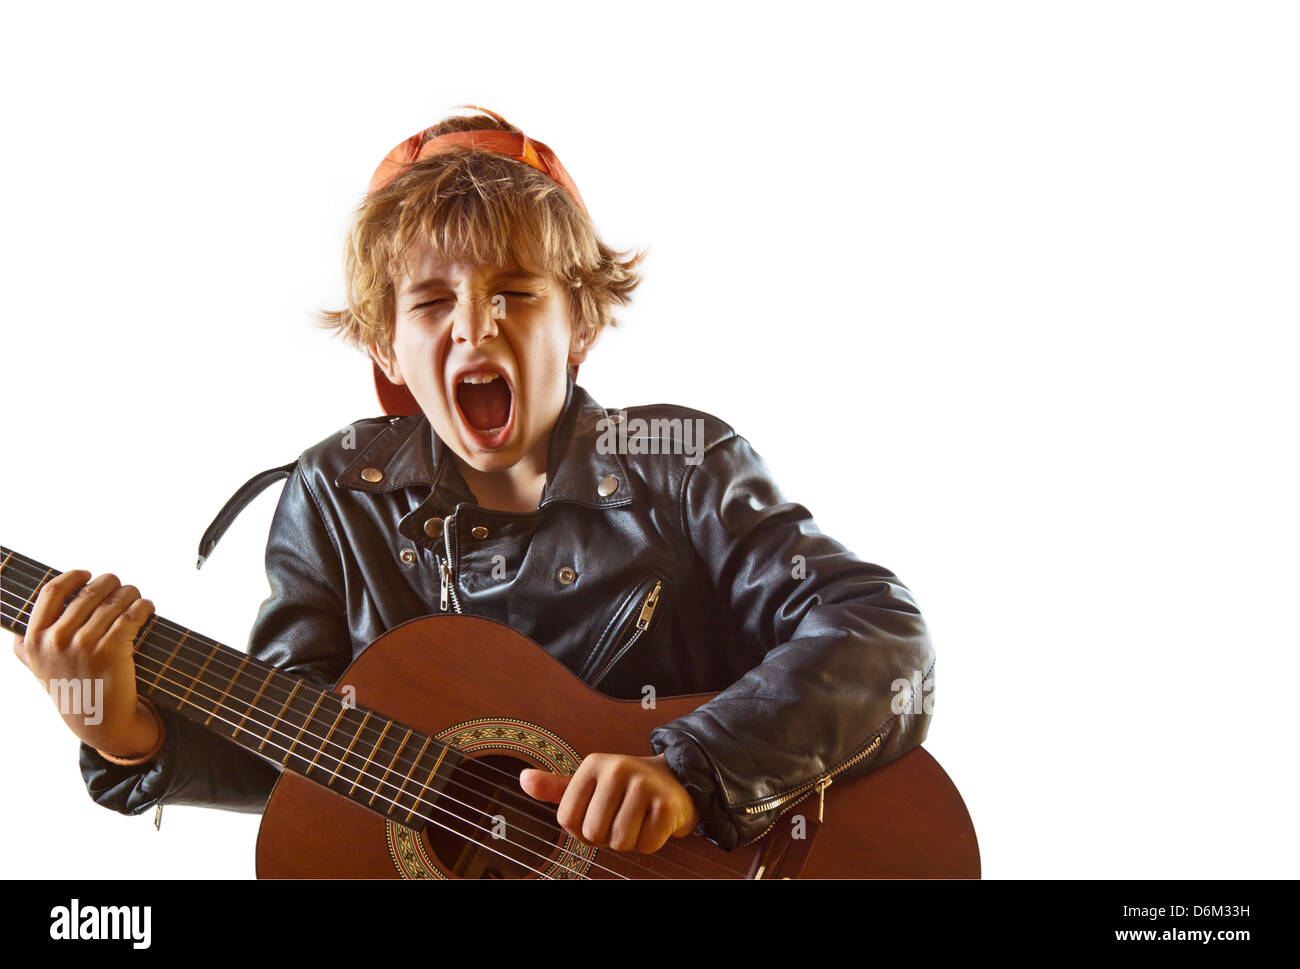 Cute small kid playing guitar with great concentration and attitude. White background, plenty of copy space. - Stock Image